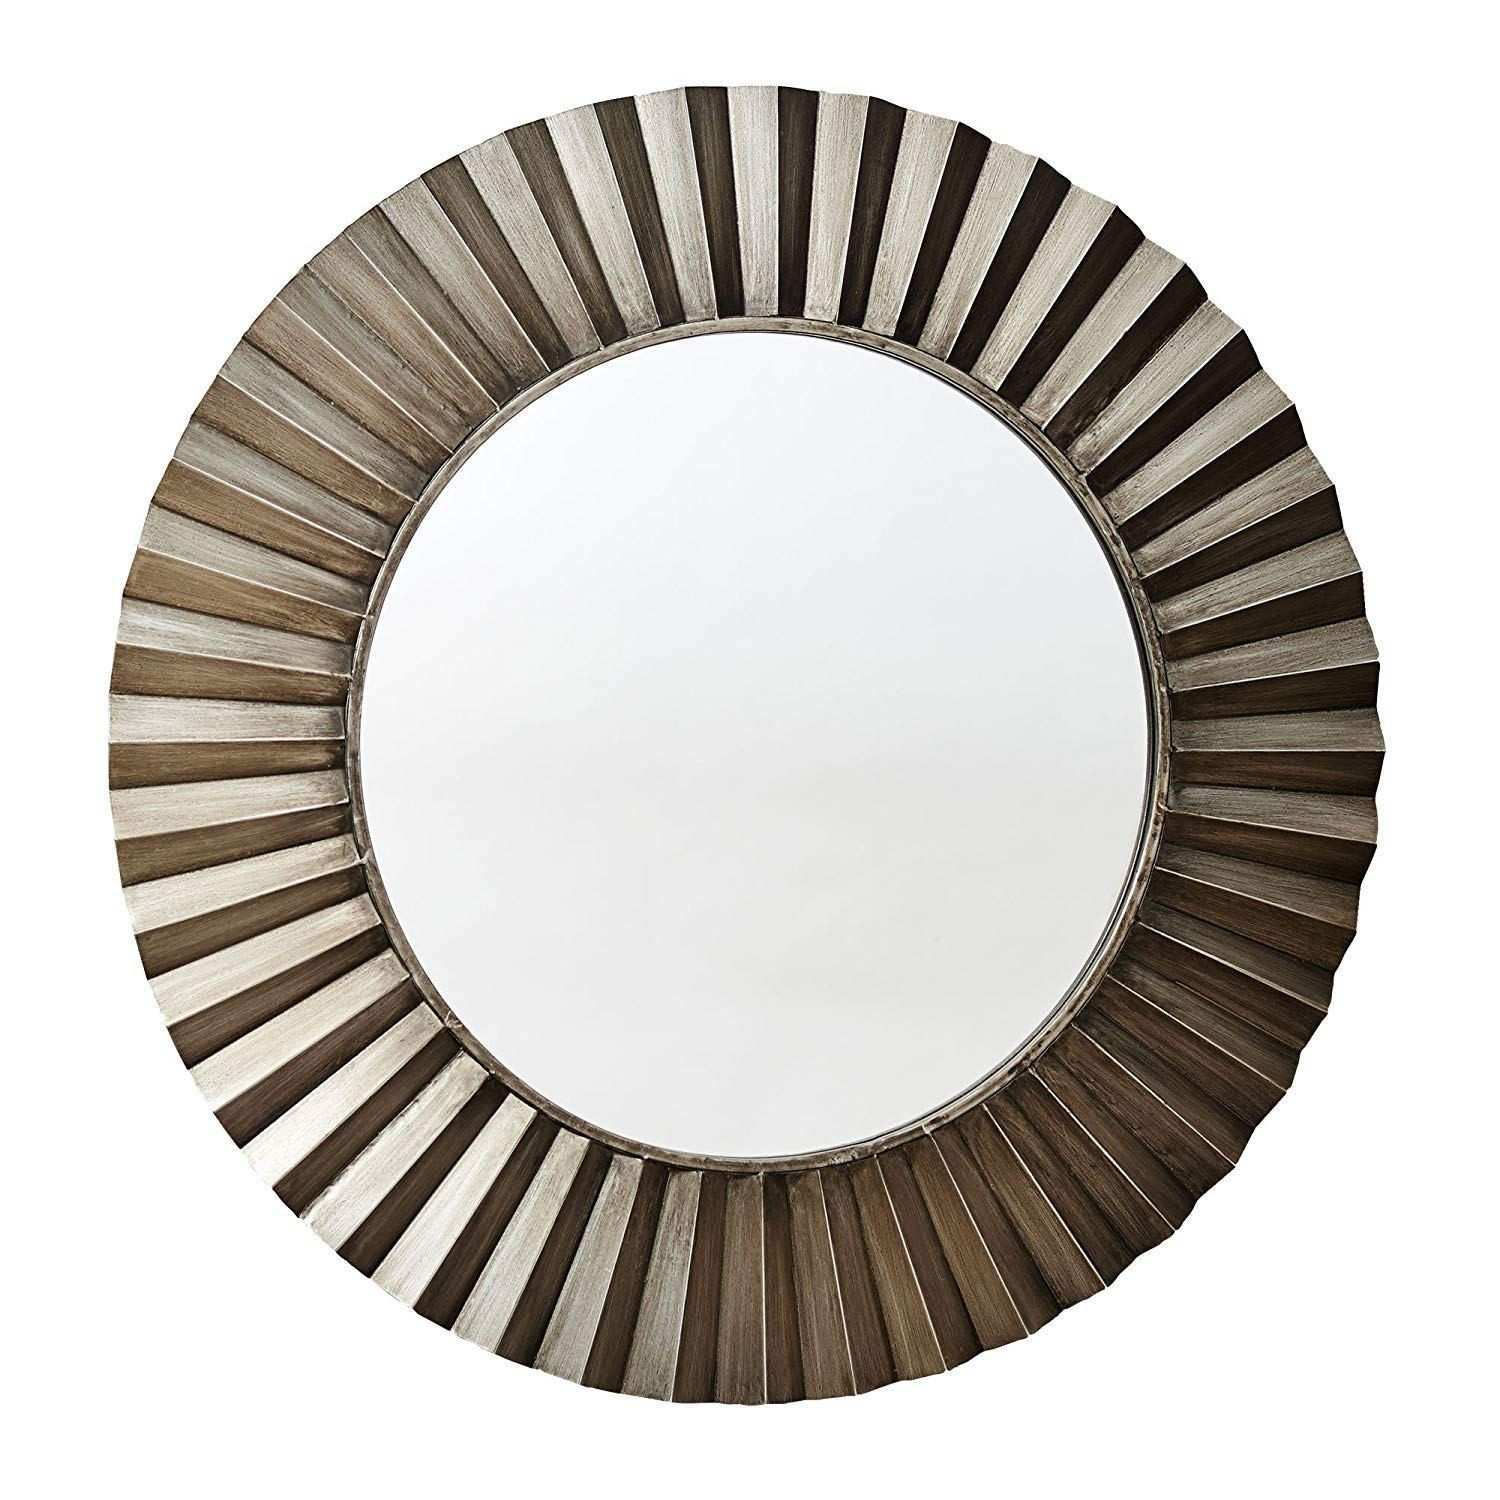 Decorative Circle Wall Mirrors Inspirational Wall Mirrors Beautiful